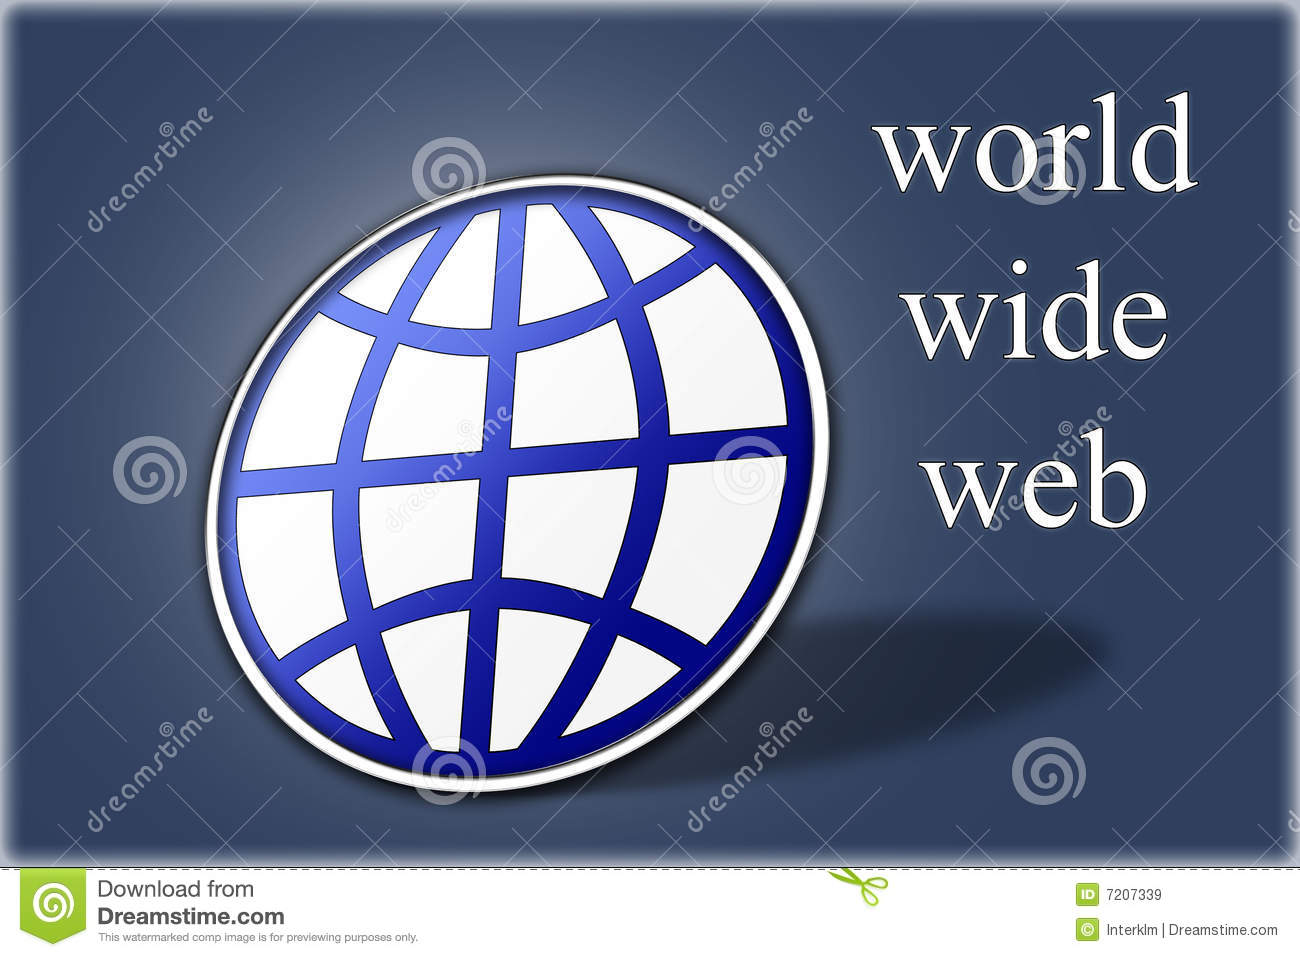 Http Www Windowssearch Exp Com Images Search Q World Wide Web Form Restab